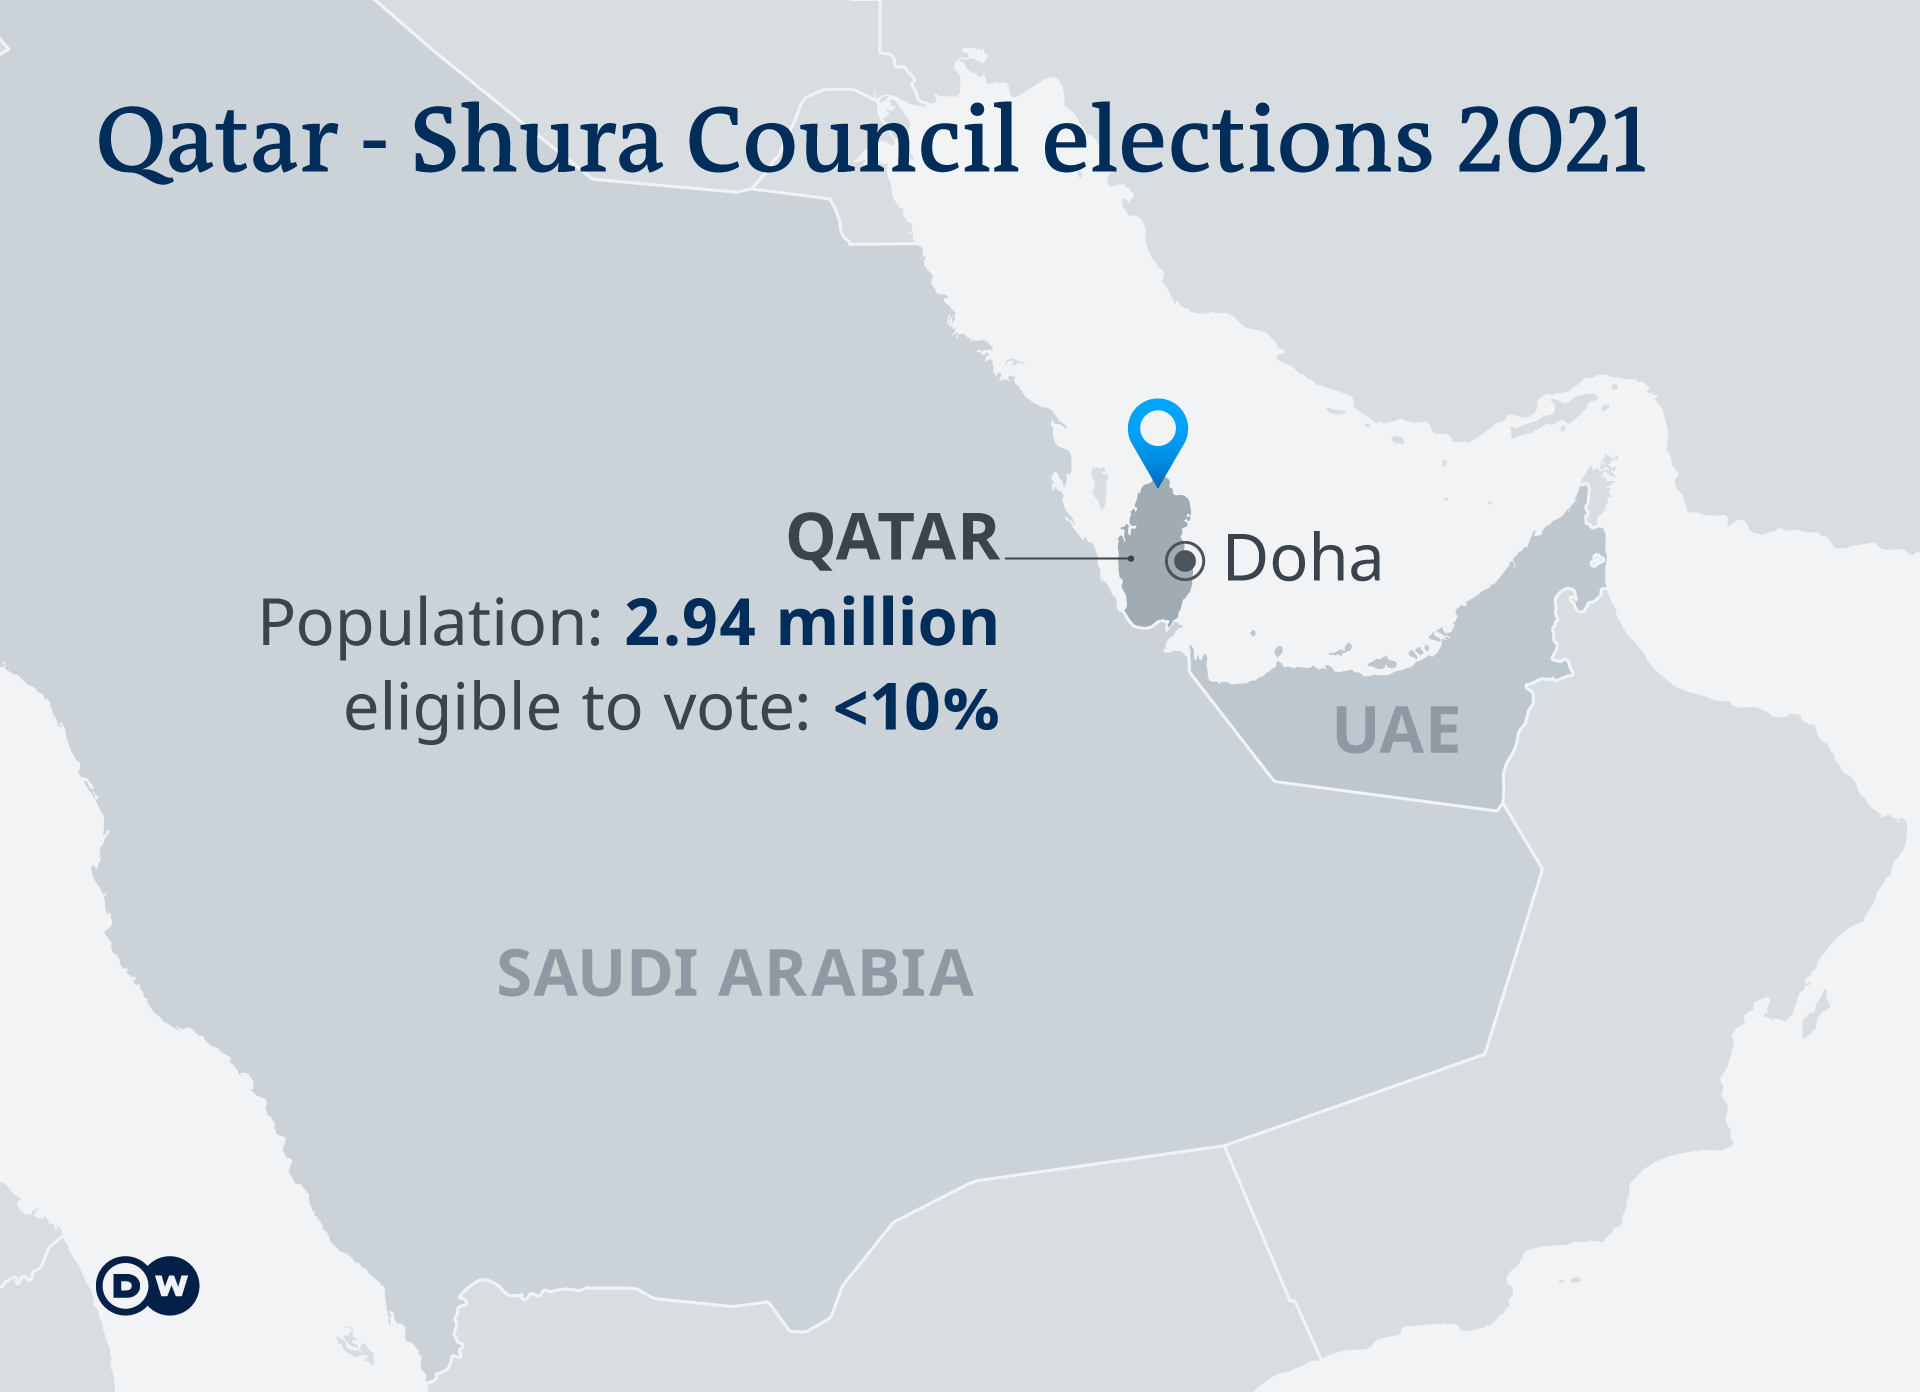 A map showing Qatar and stating that 10% of the Qatari population is eligible to vote